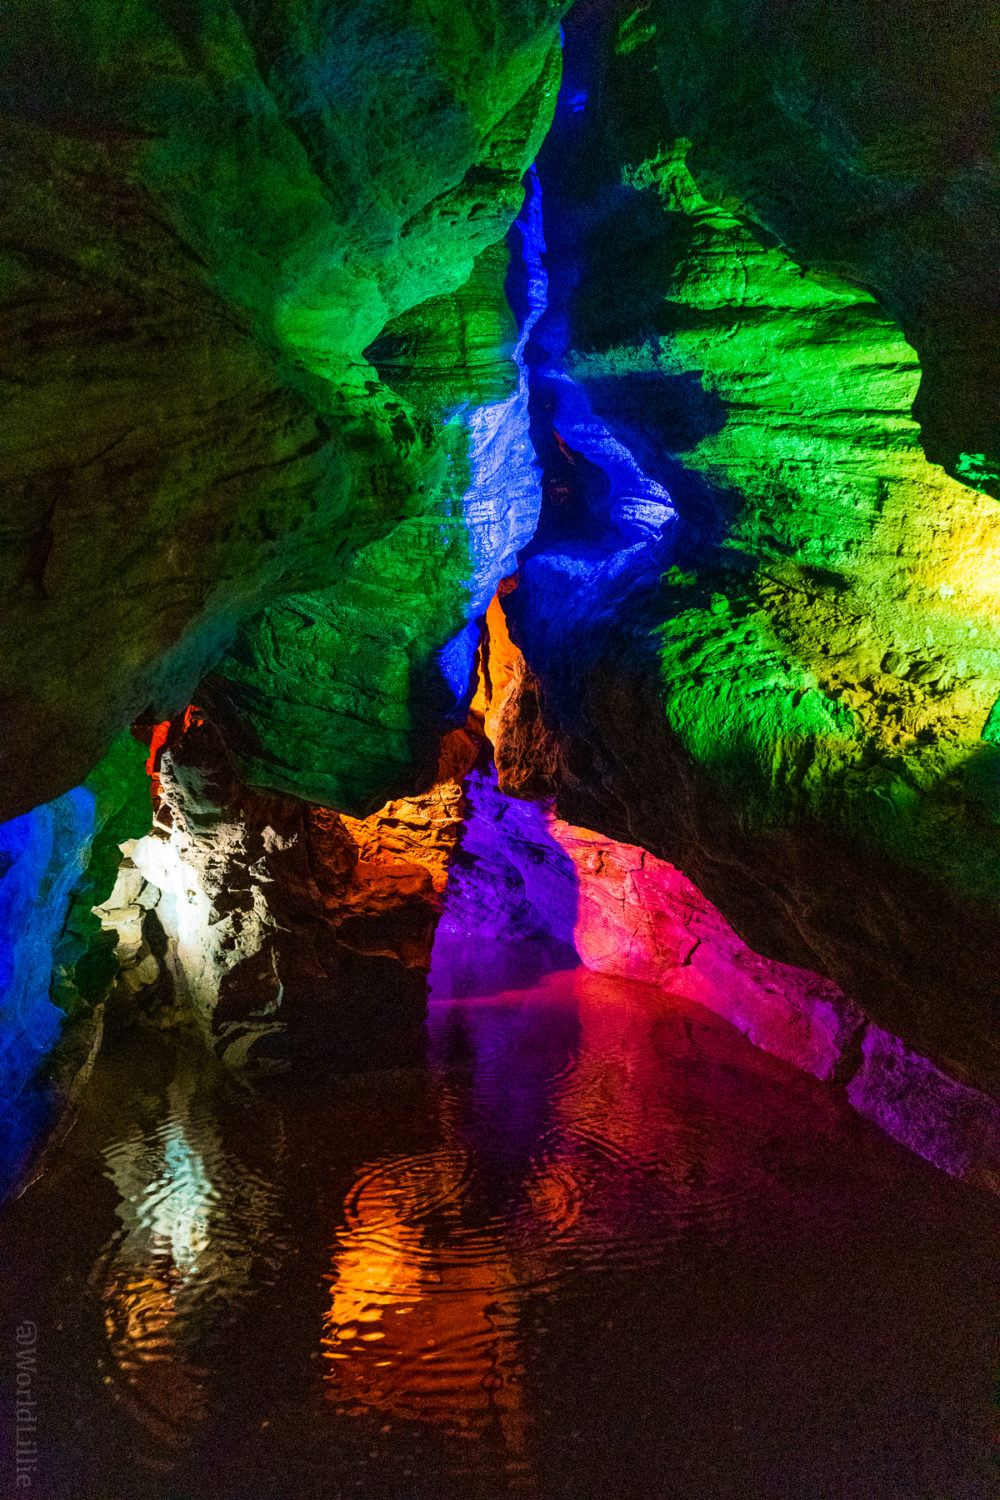 Laurel Caverns: lit with beautiful colored lights!